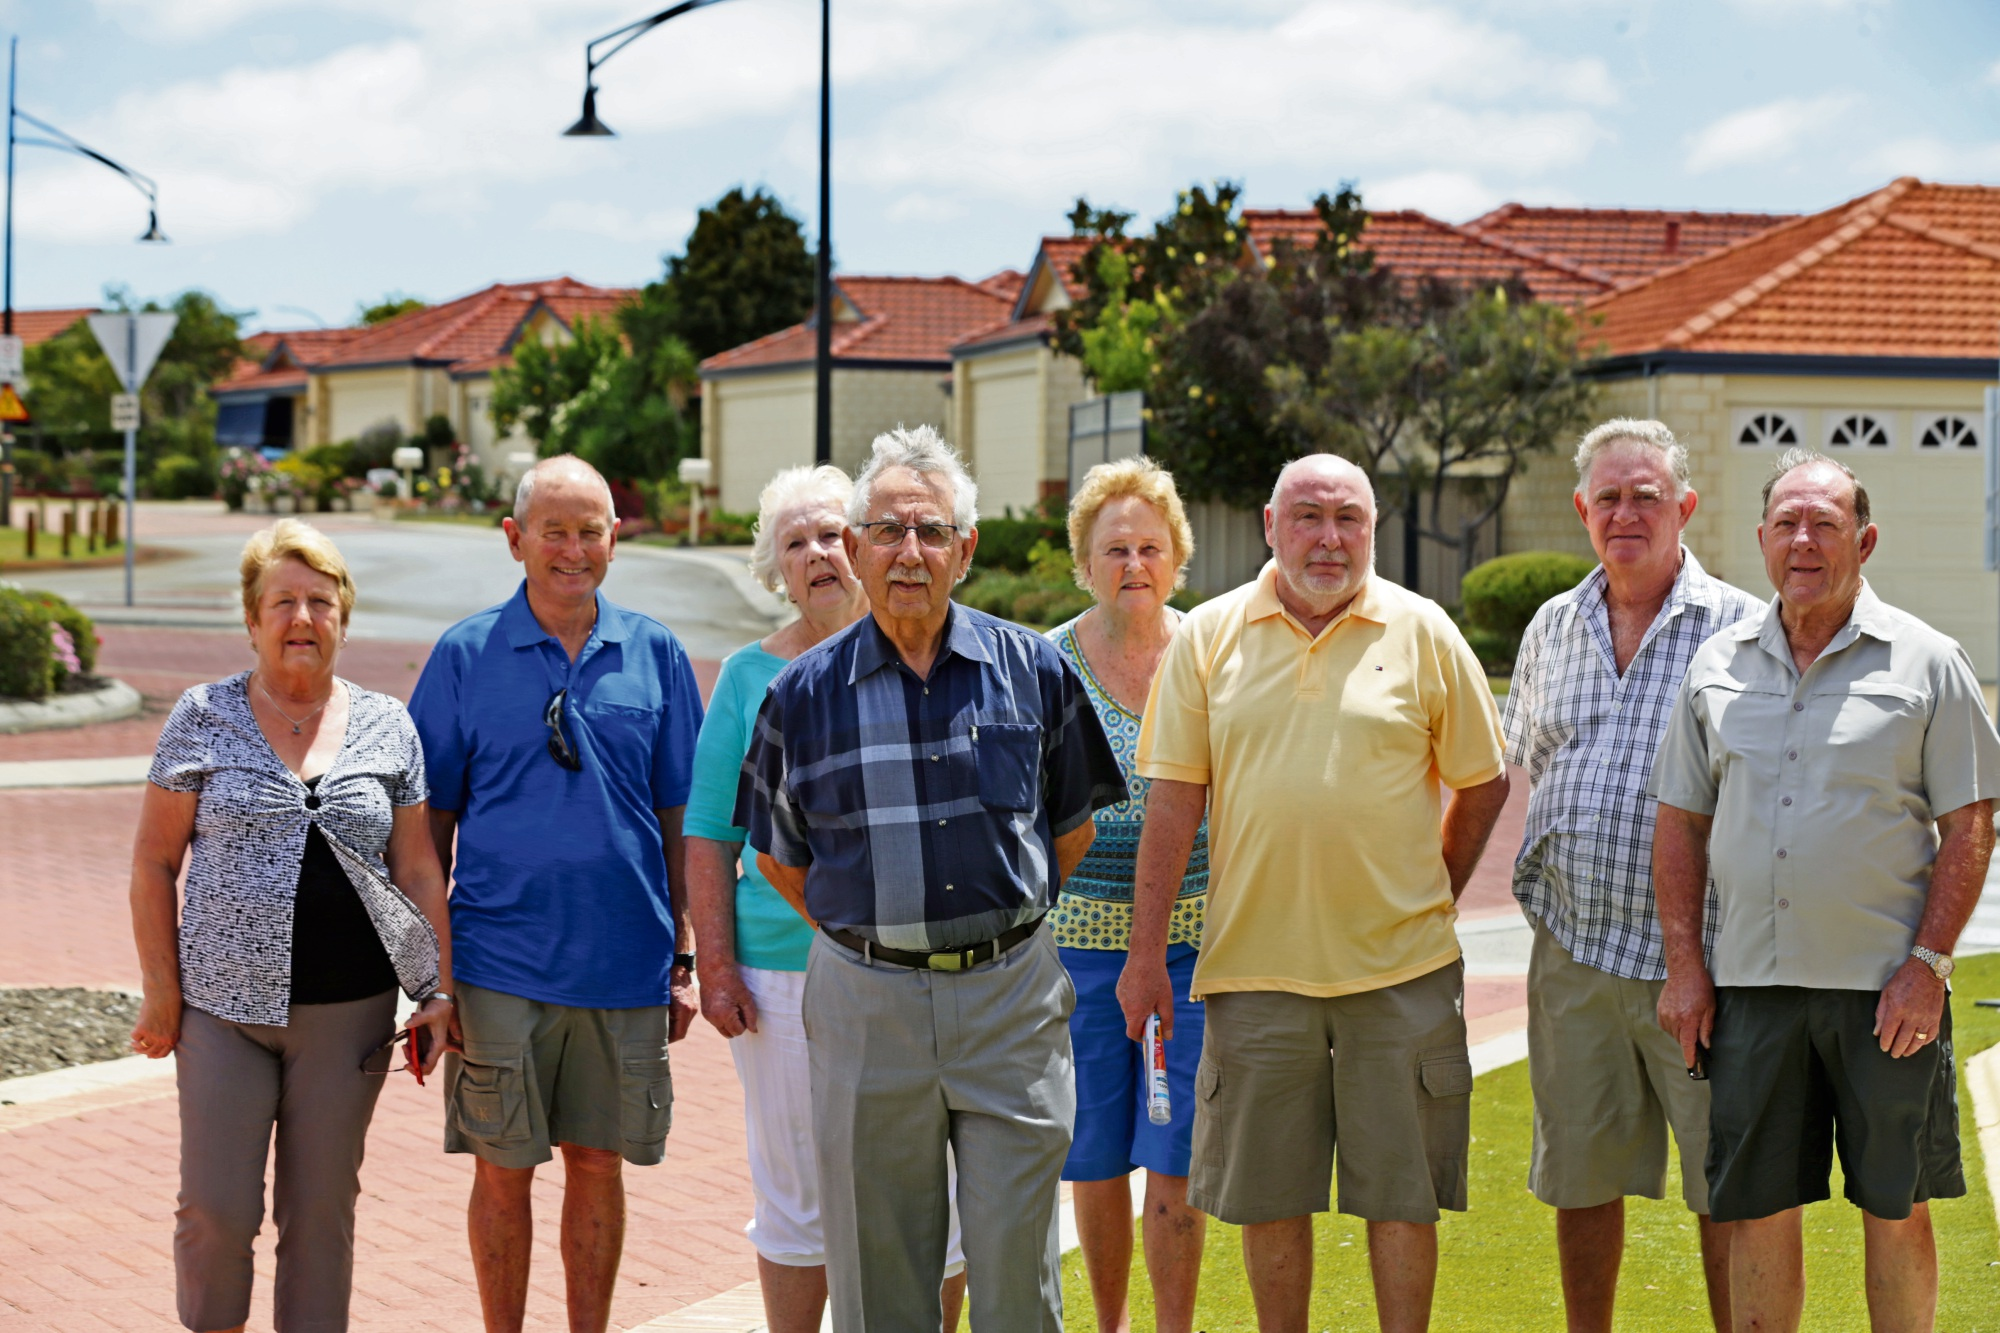 Settlers Ridgewood Rise residents Elaine Fleming, Trevor Beal, Ann Klemm, Ray Thompson, Penny Beal, Bernie Frayne, Brian Griffin and John Ashley. Picture: Martin Kennealey d478011